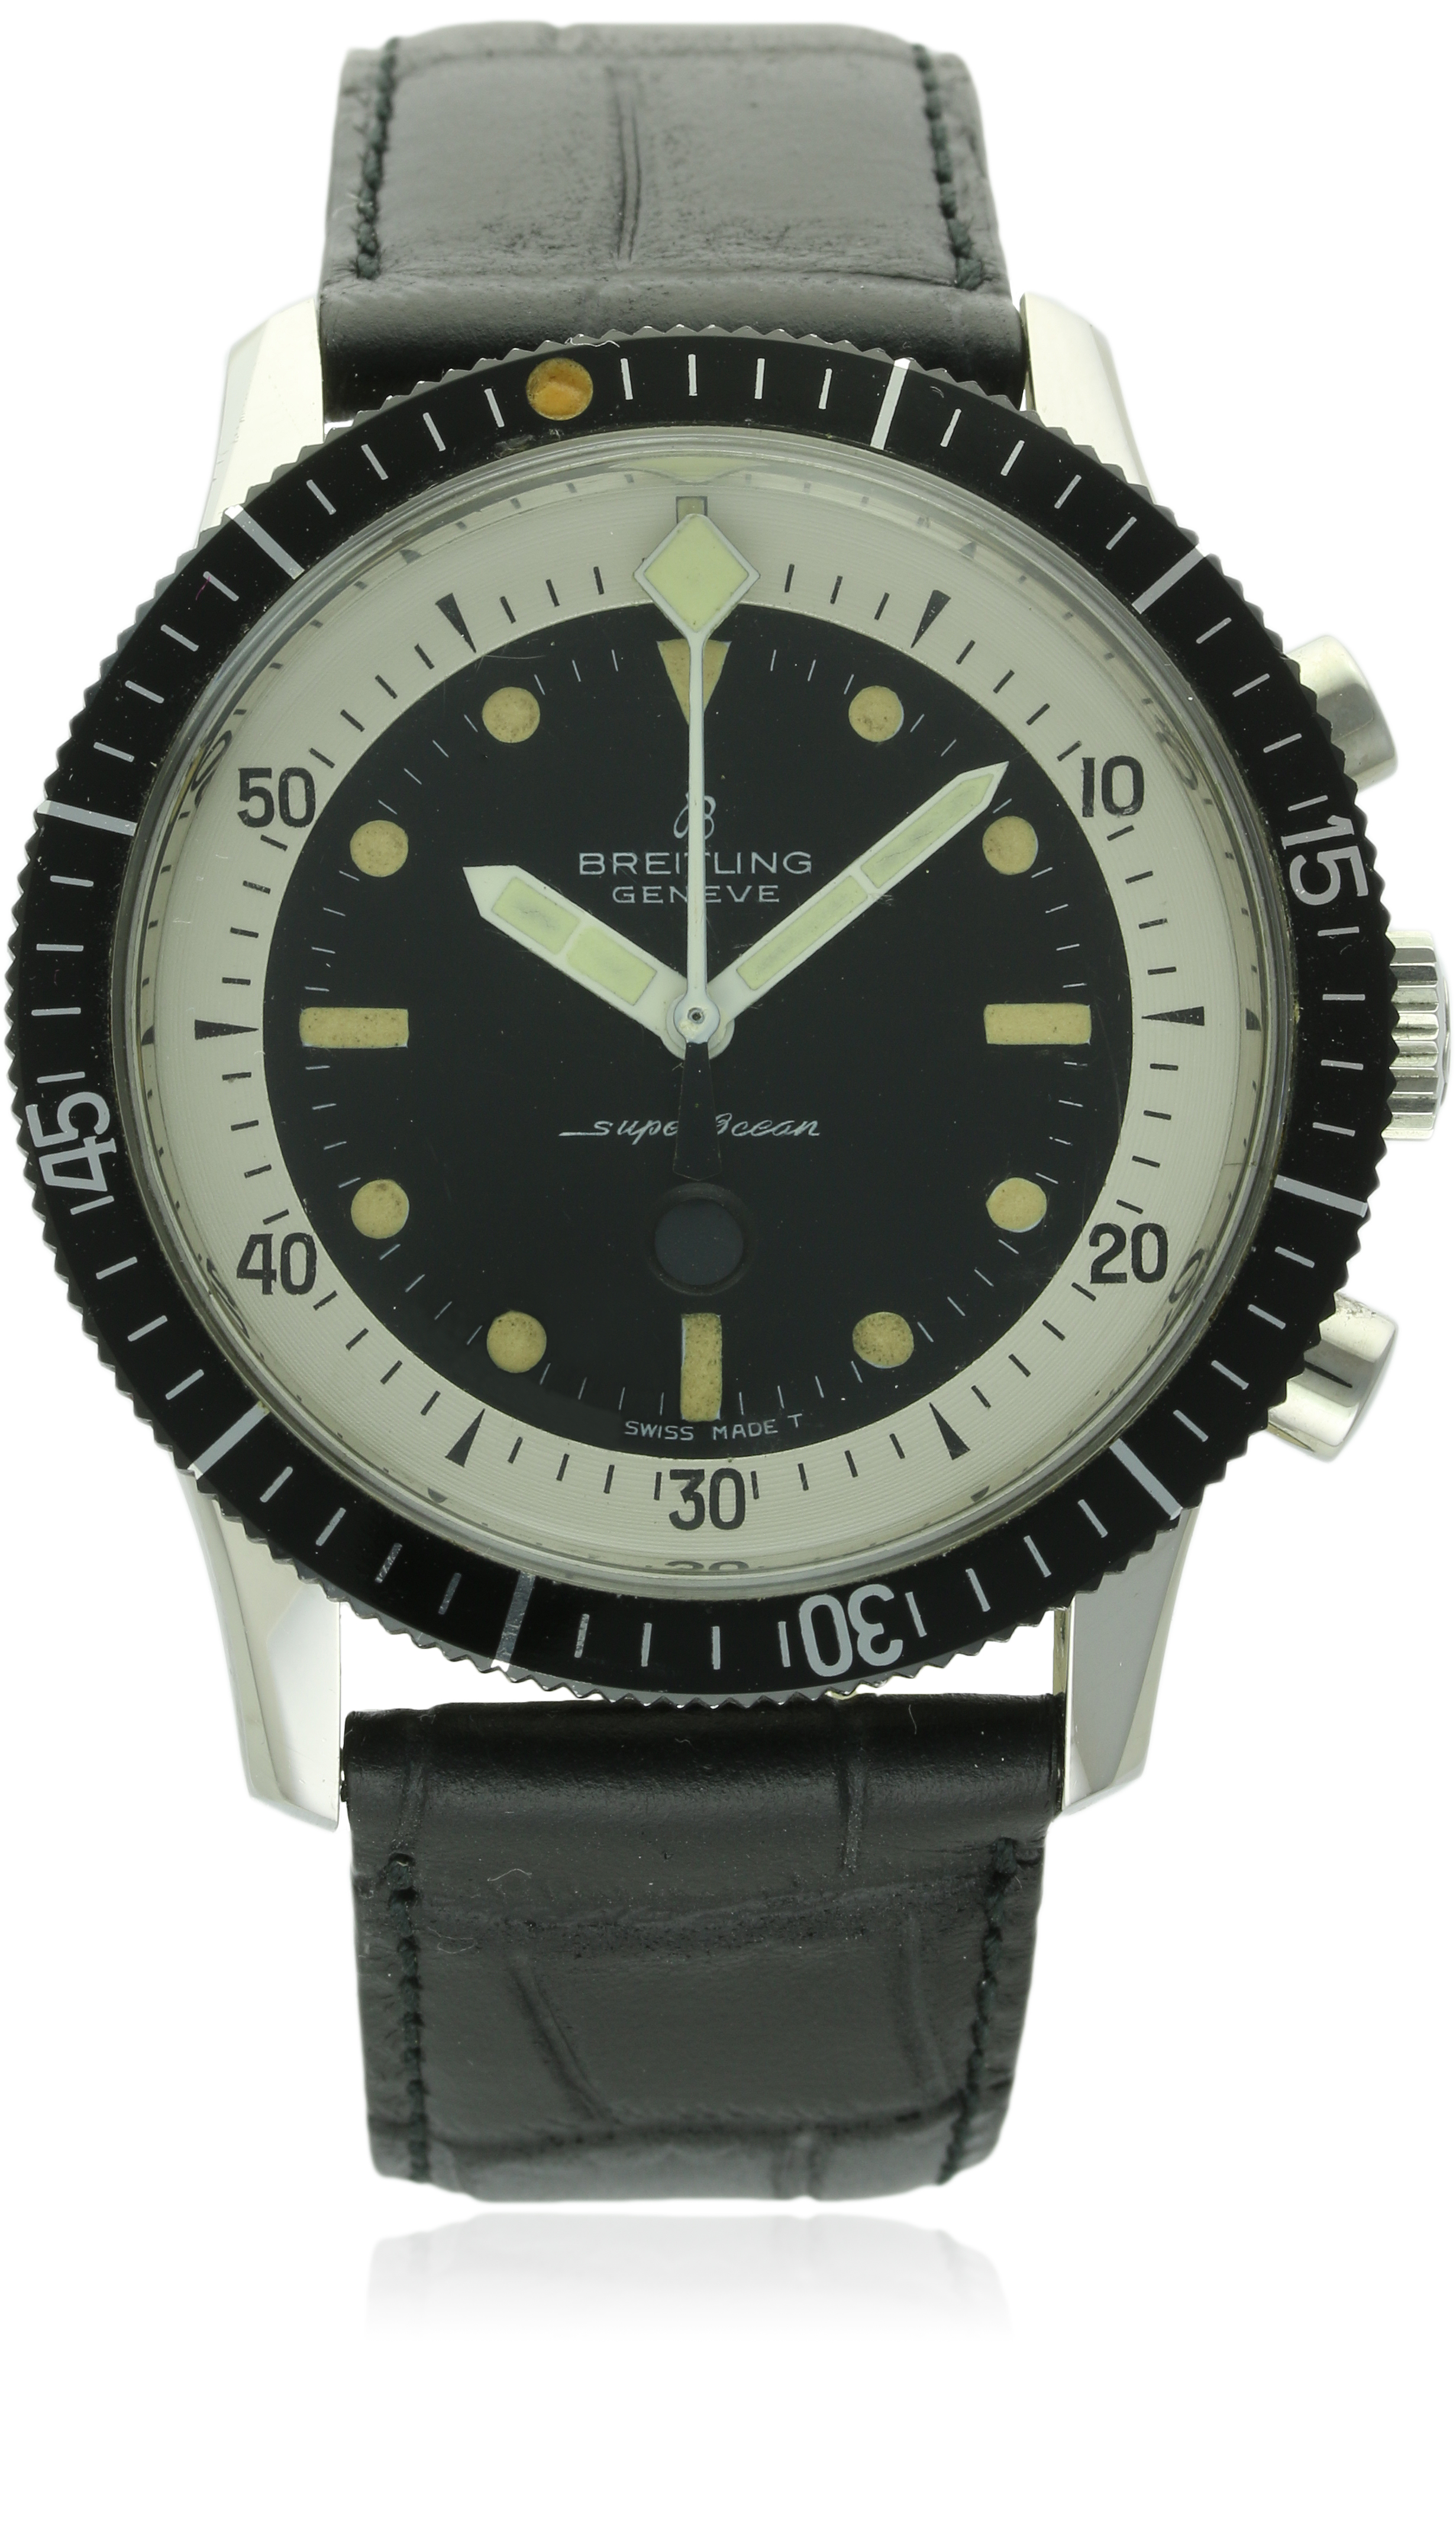 Am I the only one who wants tonudge that bezel slightly to the right? Photo courtesy of Watches of Knightsbridge